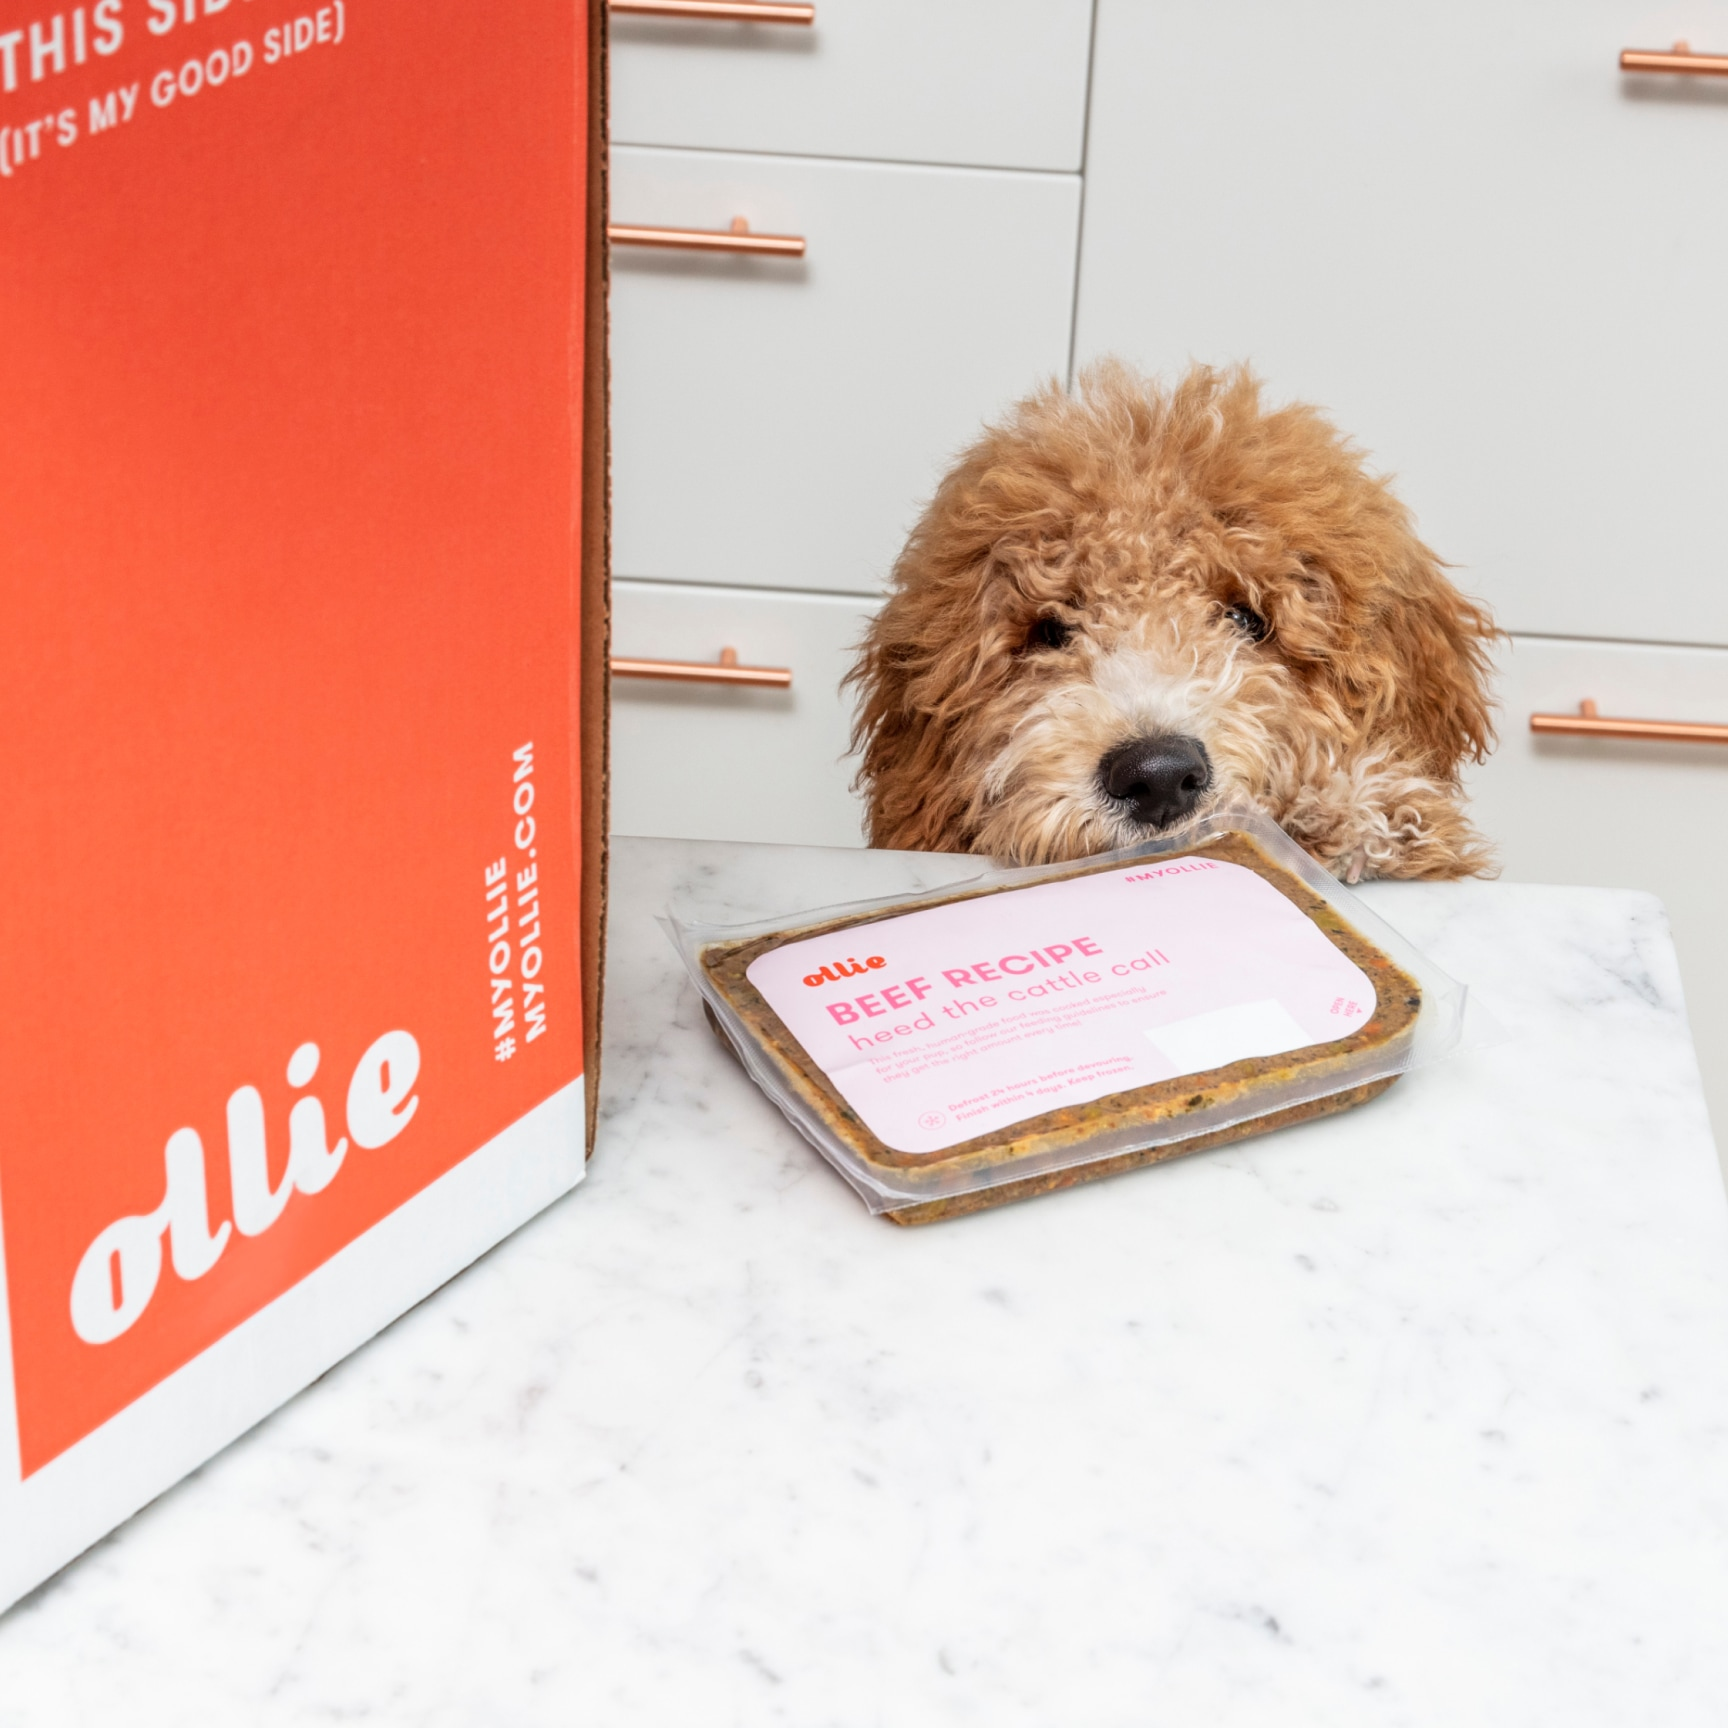 Dog leaning on edge of counter looking at a pack of Ollie